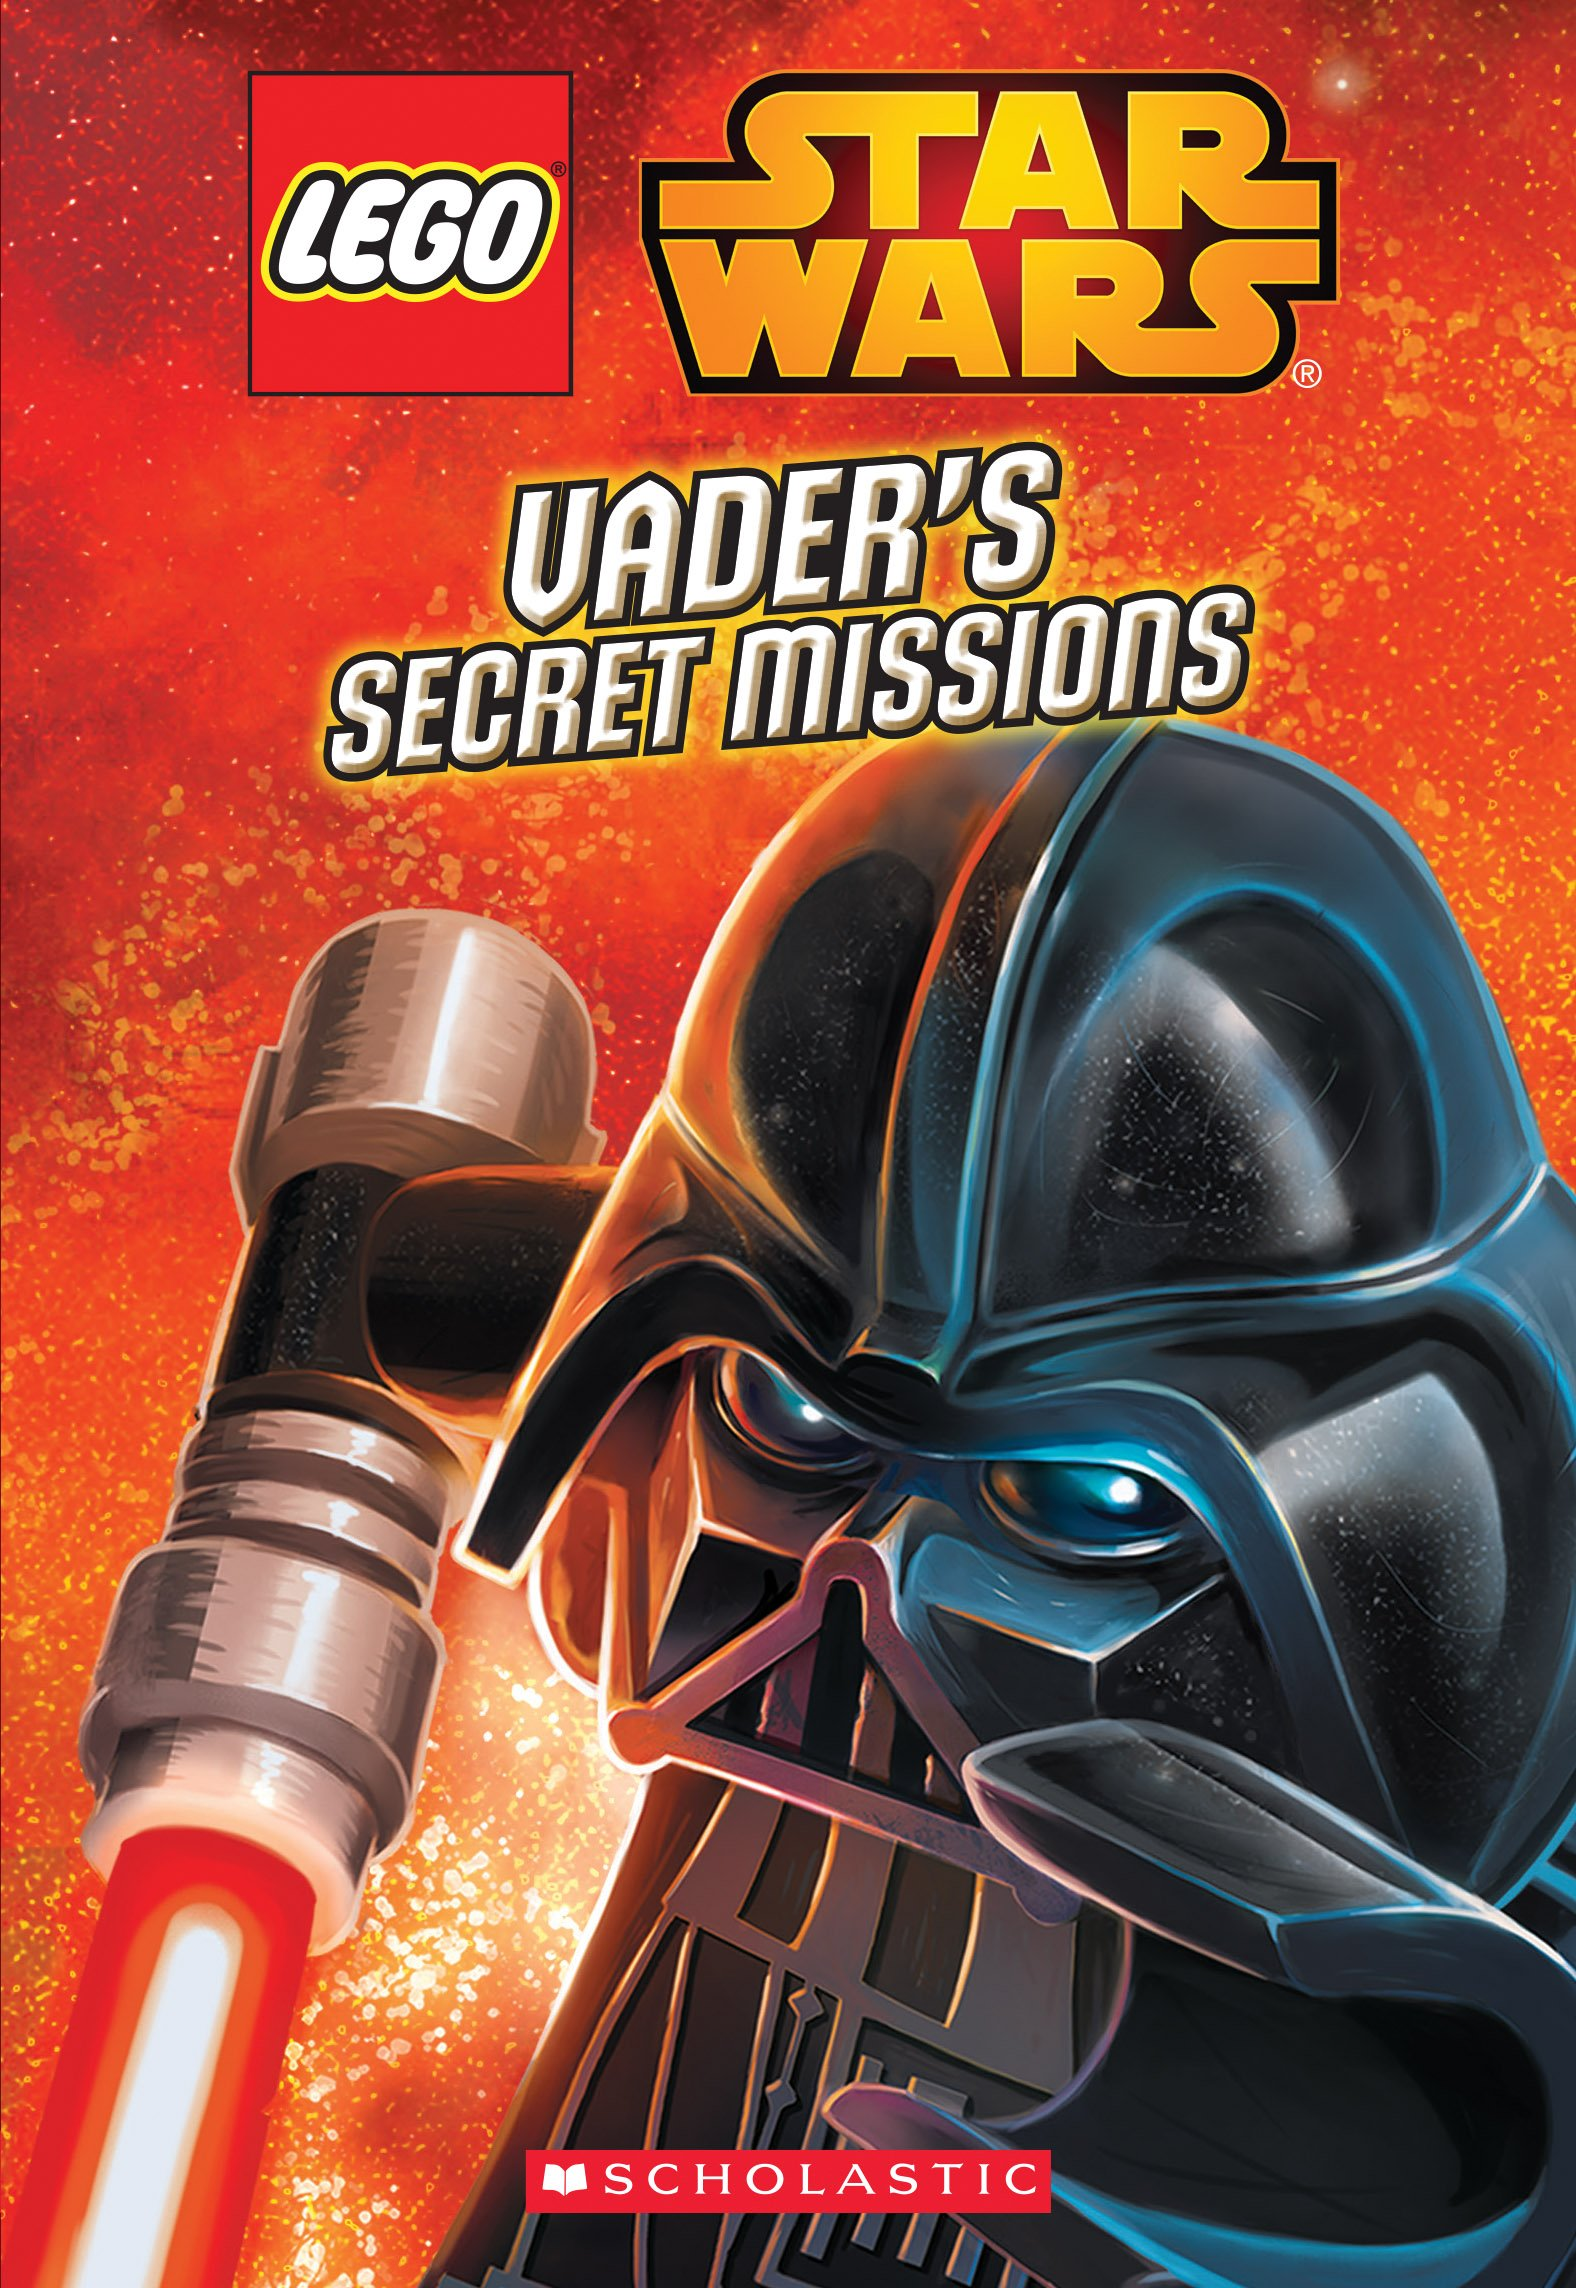 Lego Star Wars: Darth Vader's Secret Missions